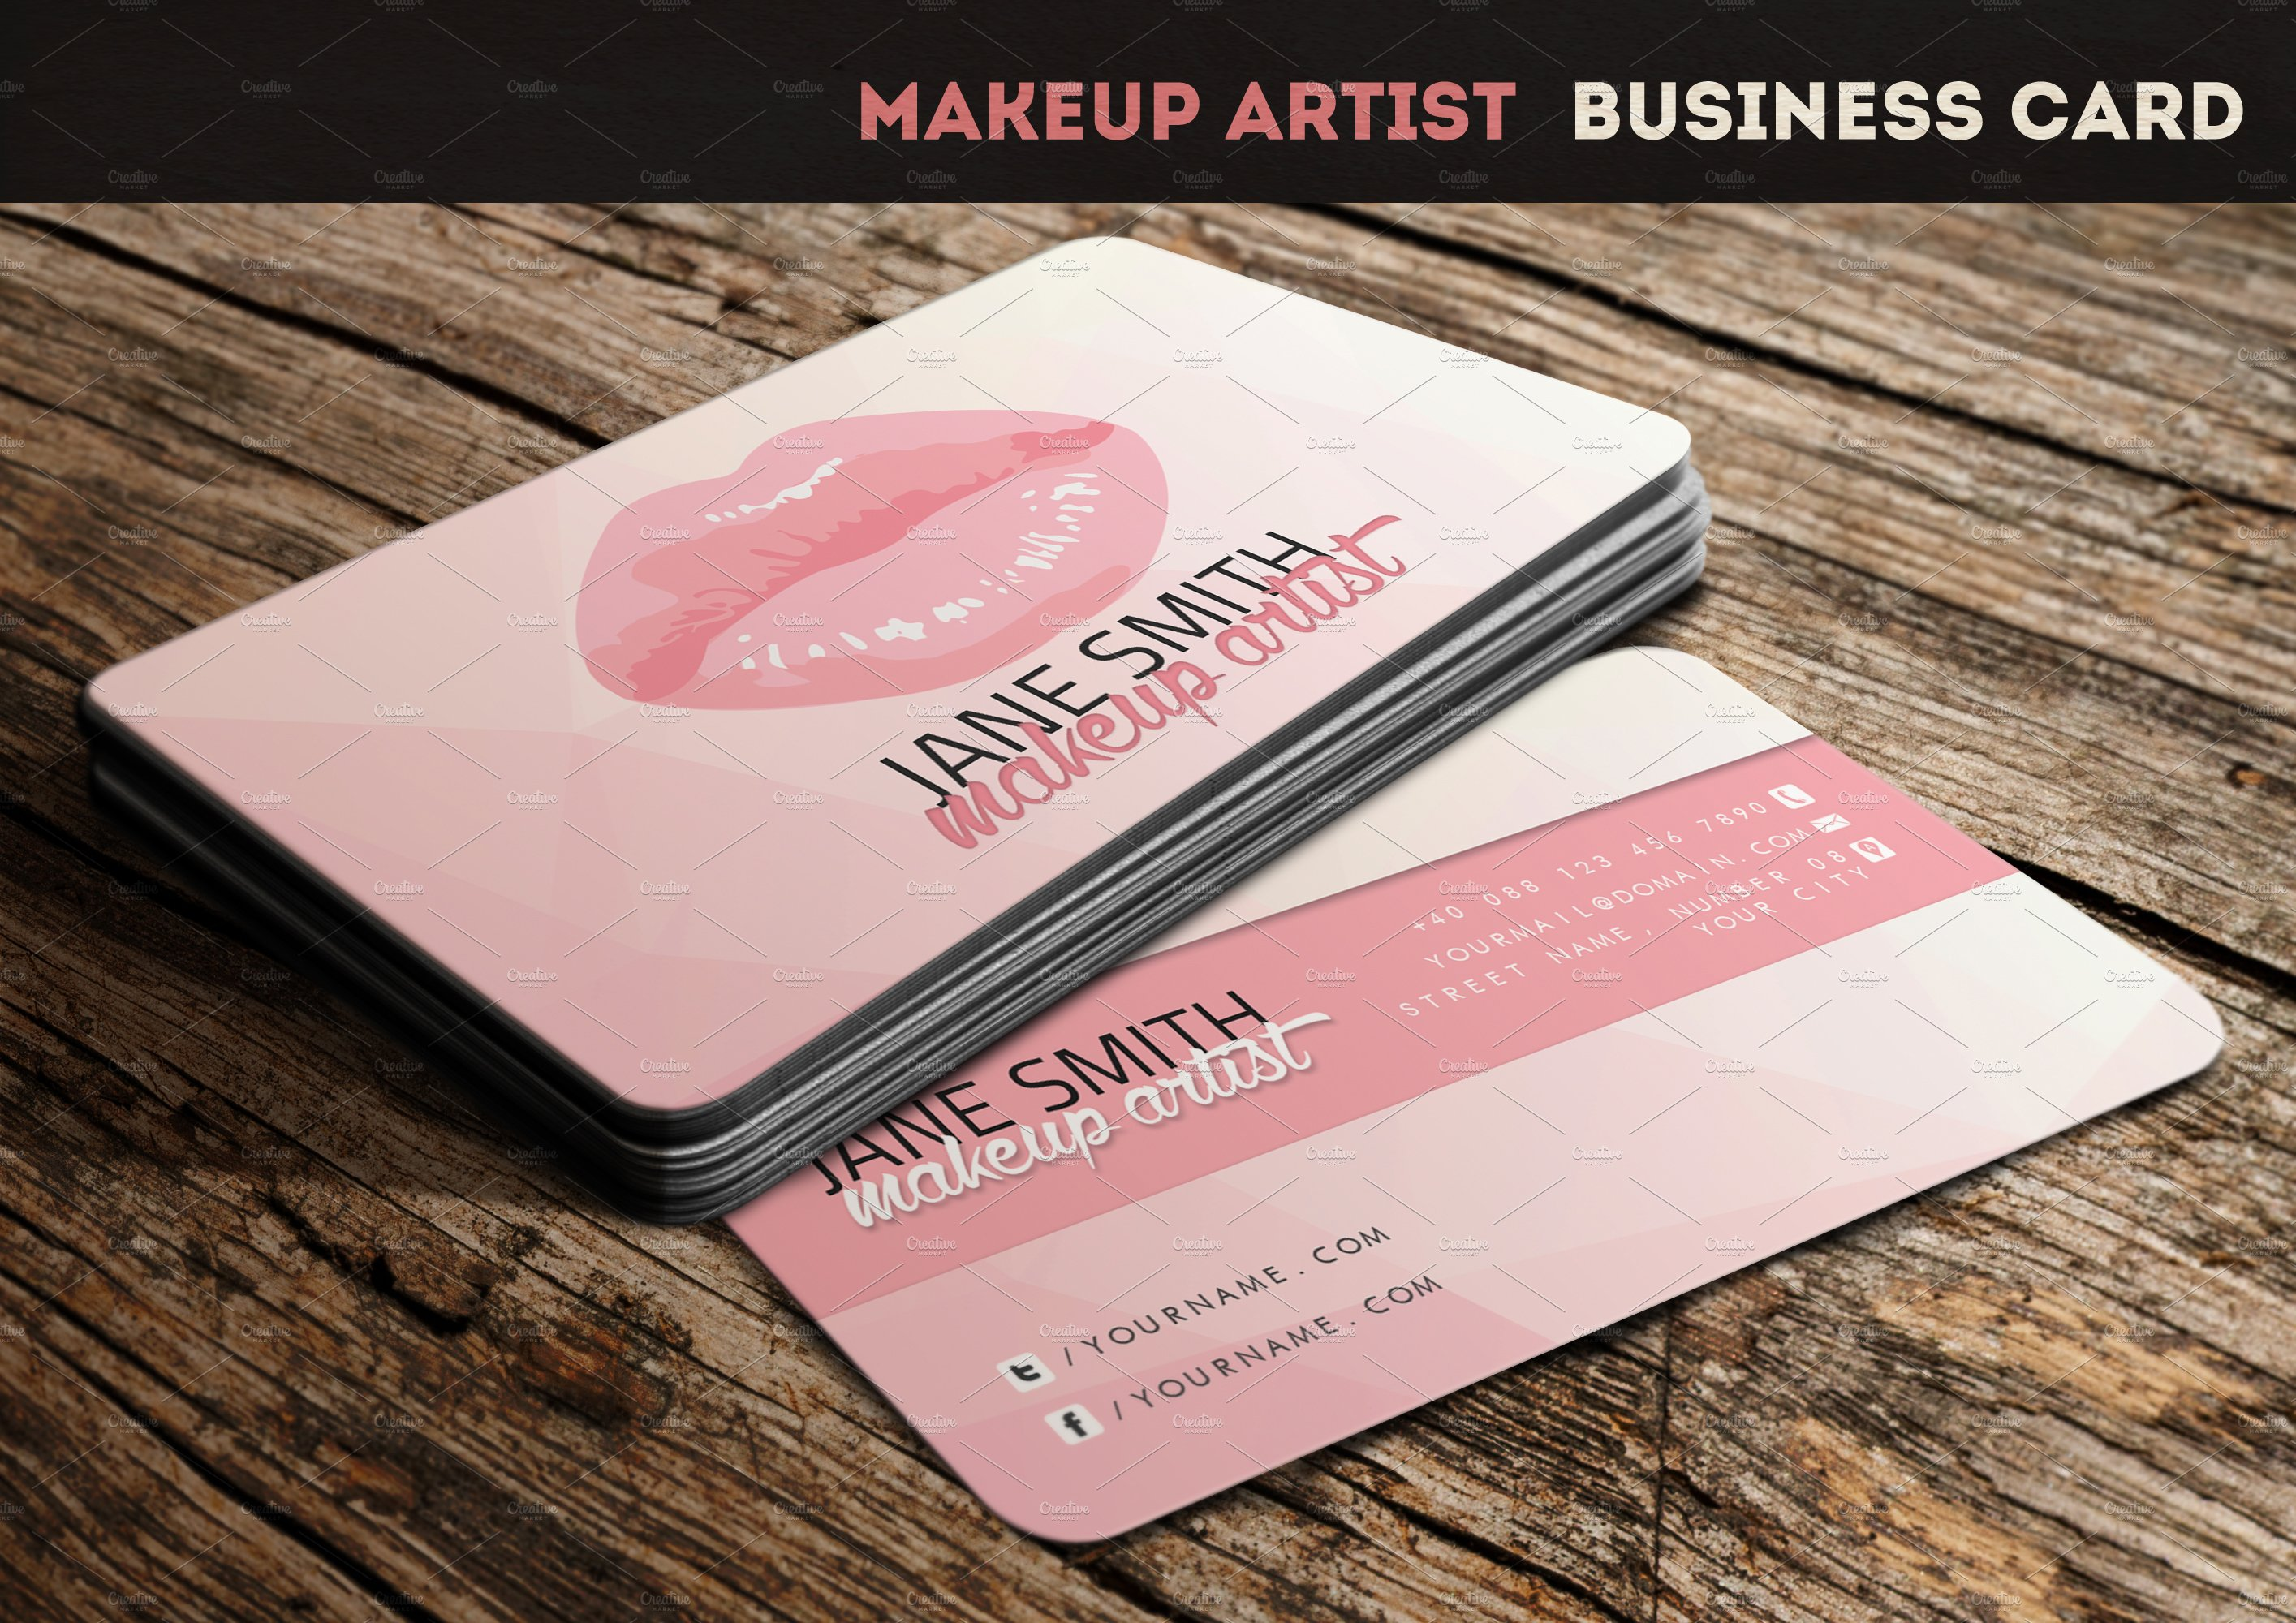 Makeup artist business card business card templates creative market fbccfo Gallery